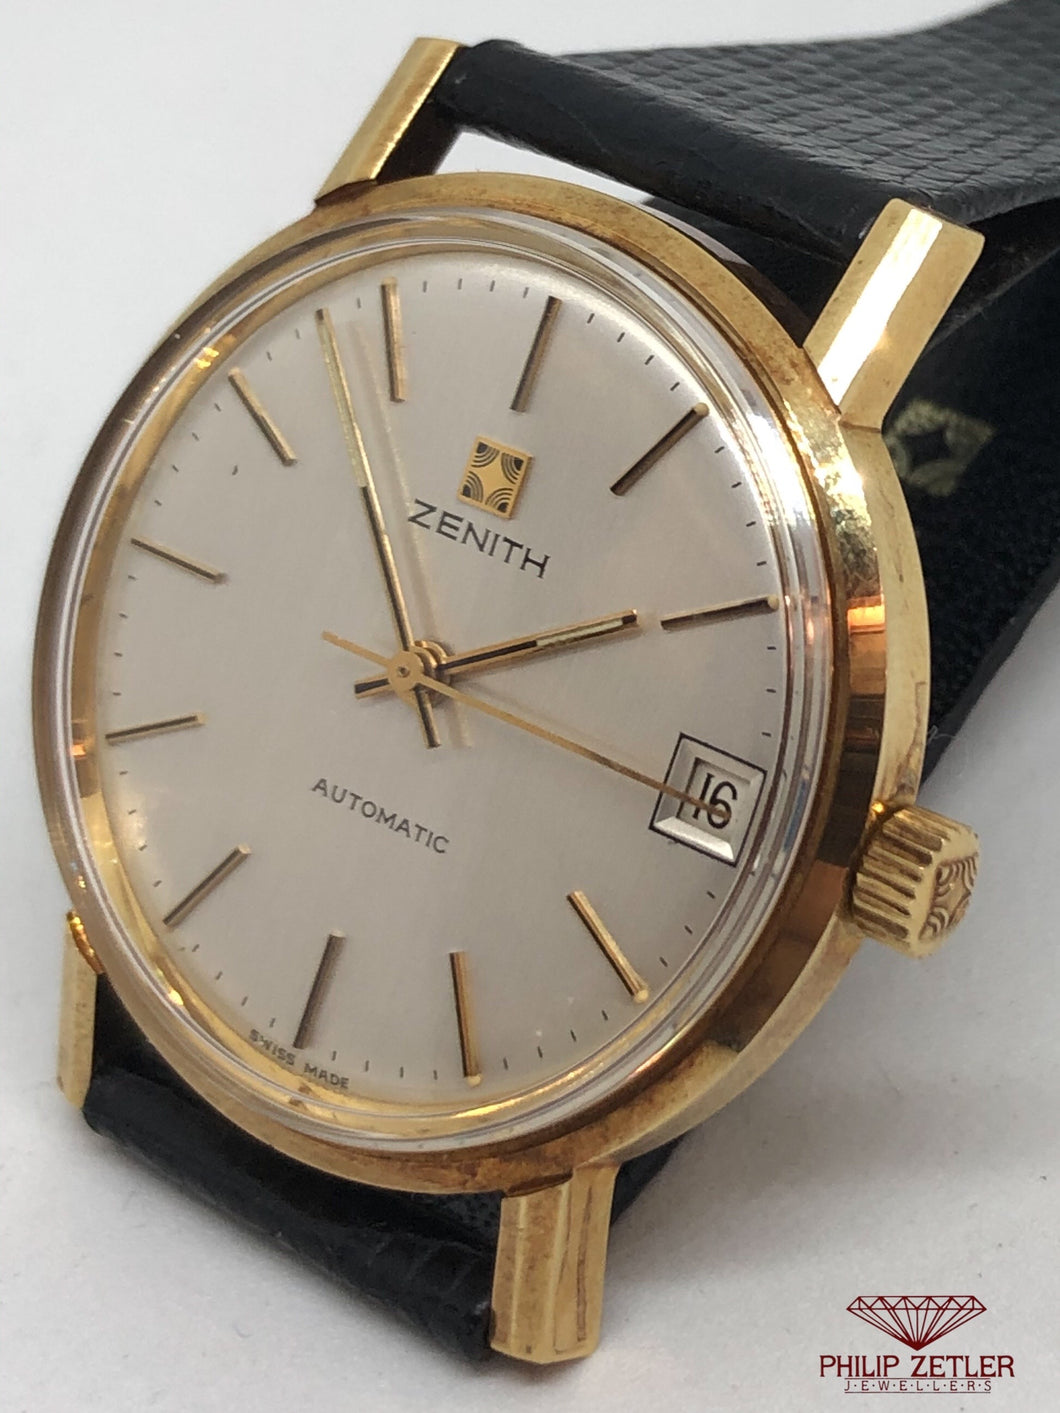 Zenith 18ct Analogue Automatic (1970s )